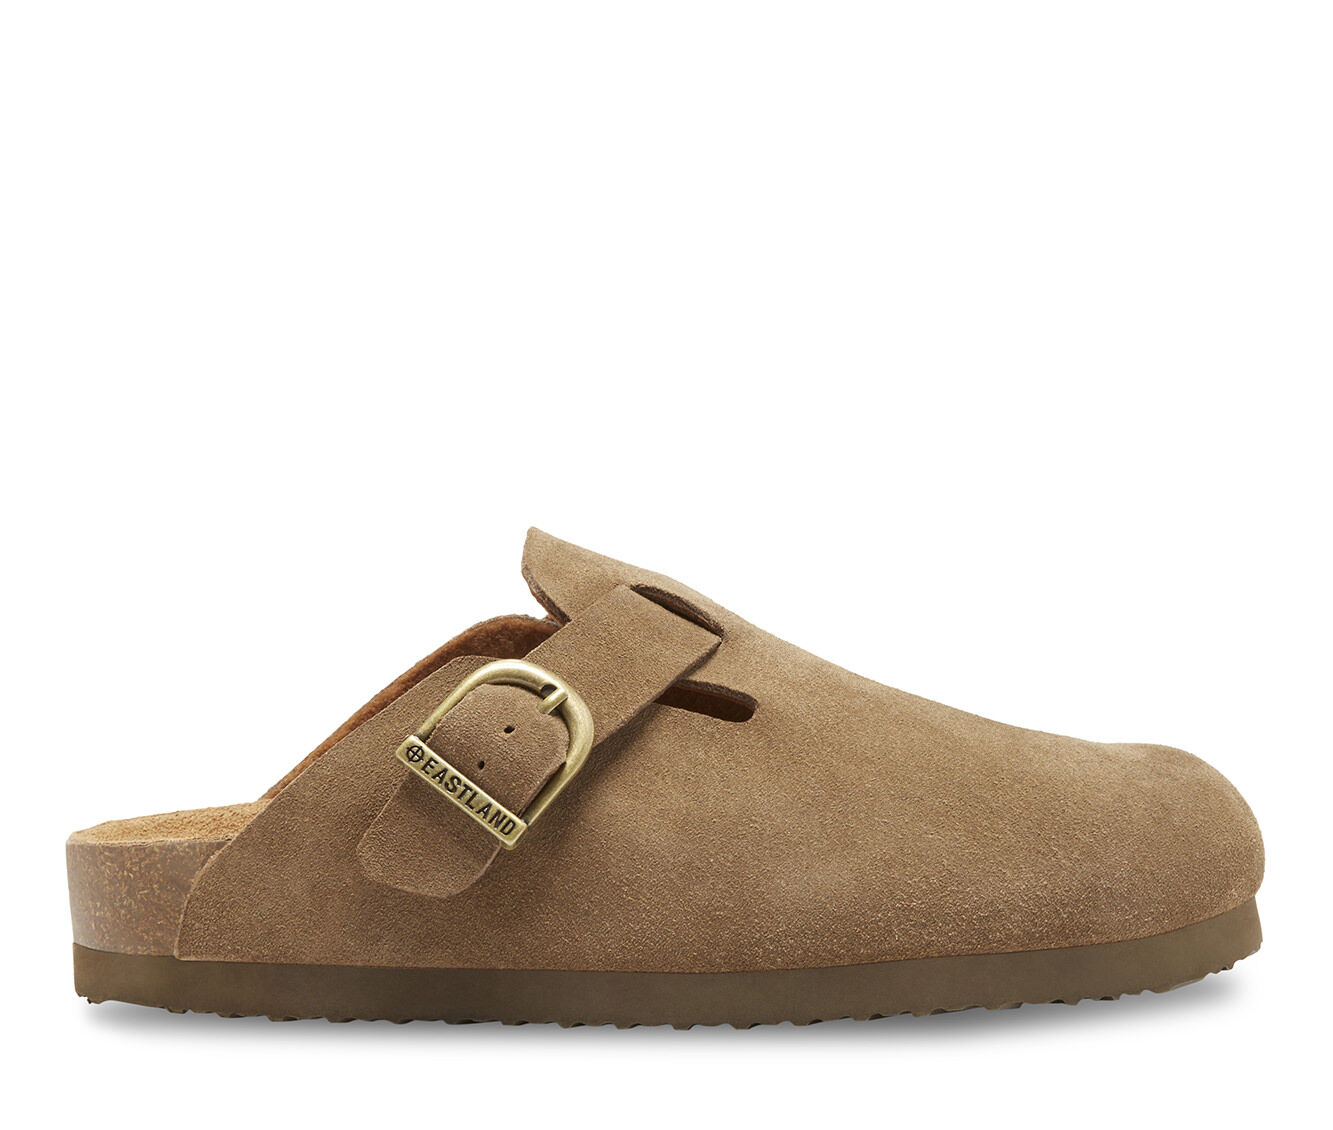 Women's Eastland Gina Clogs Tan